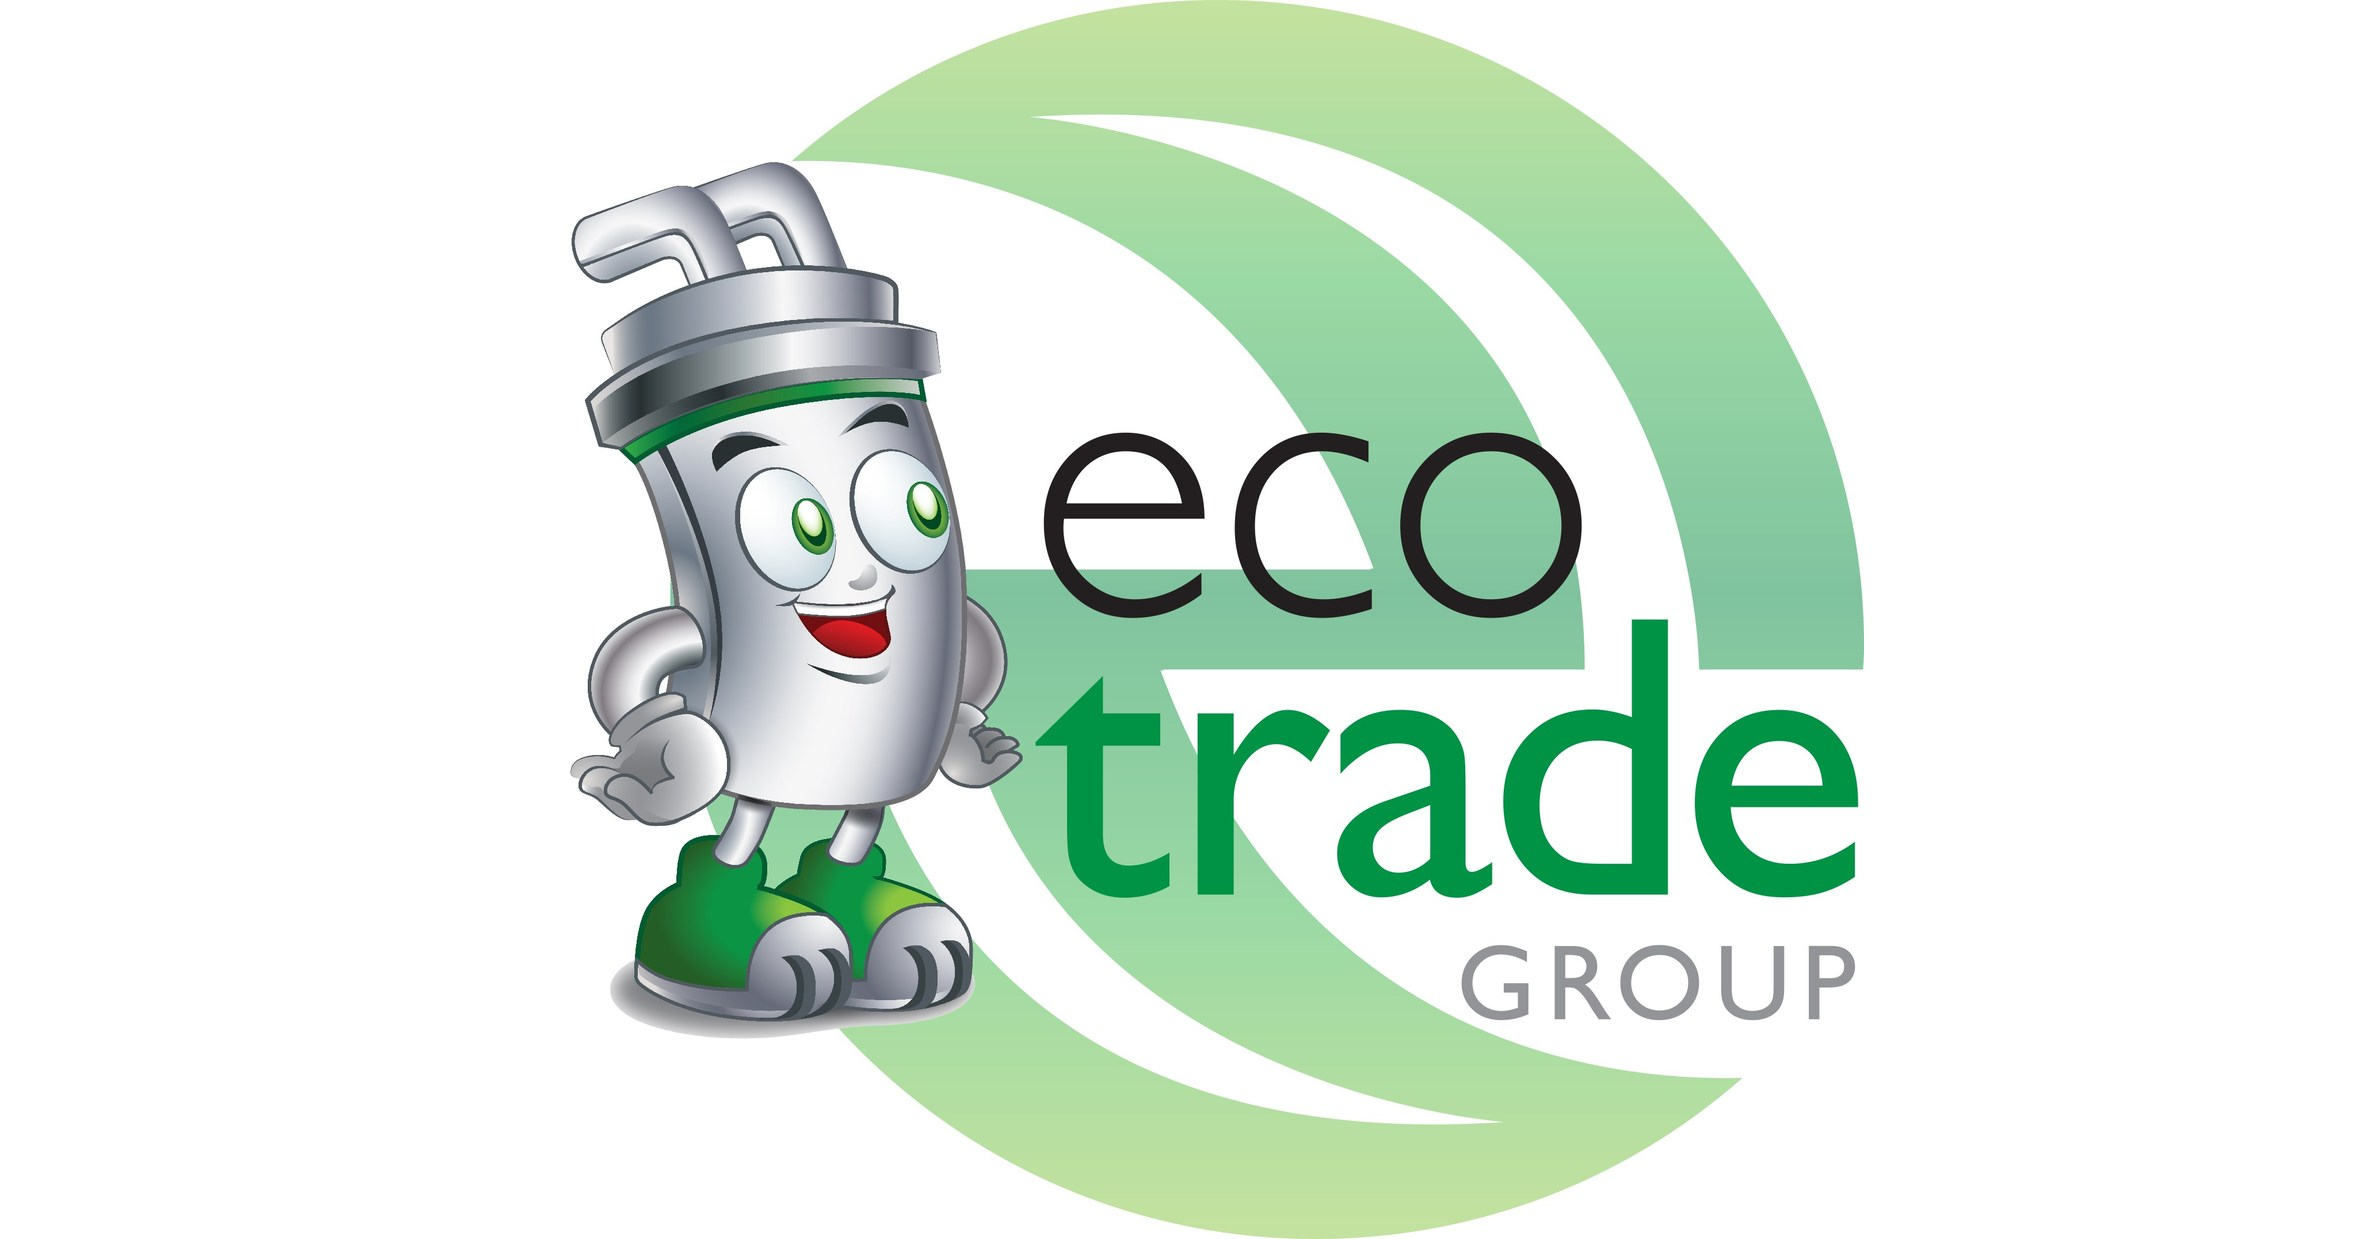 Eco Cat App, The Pricing Guide for Auto catalyst recycling